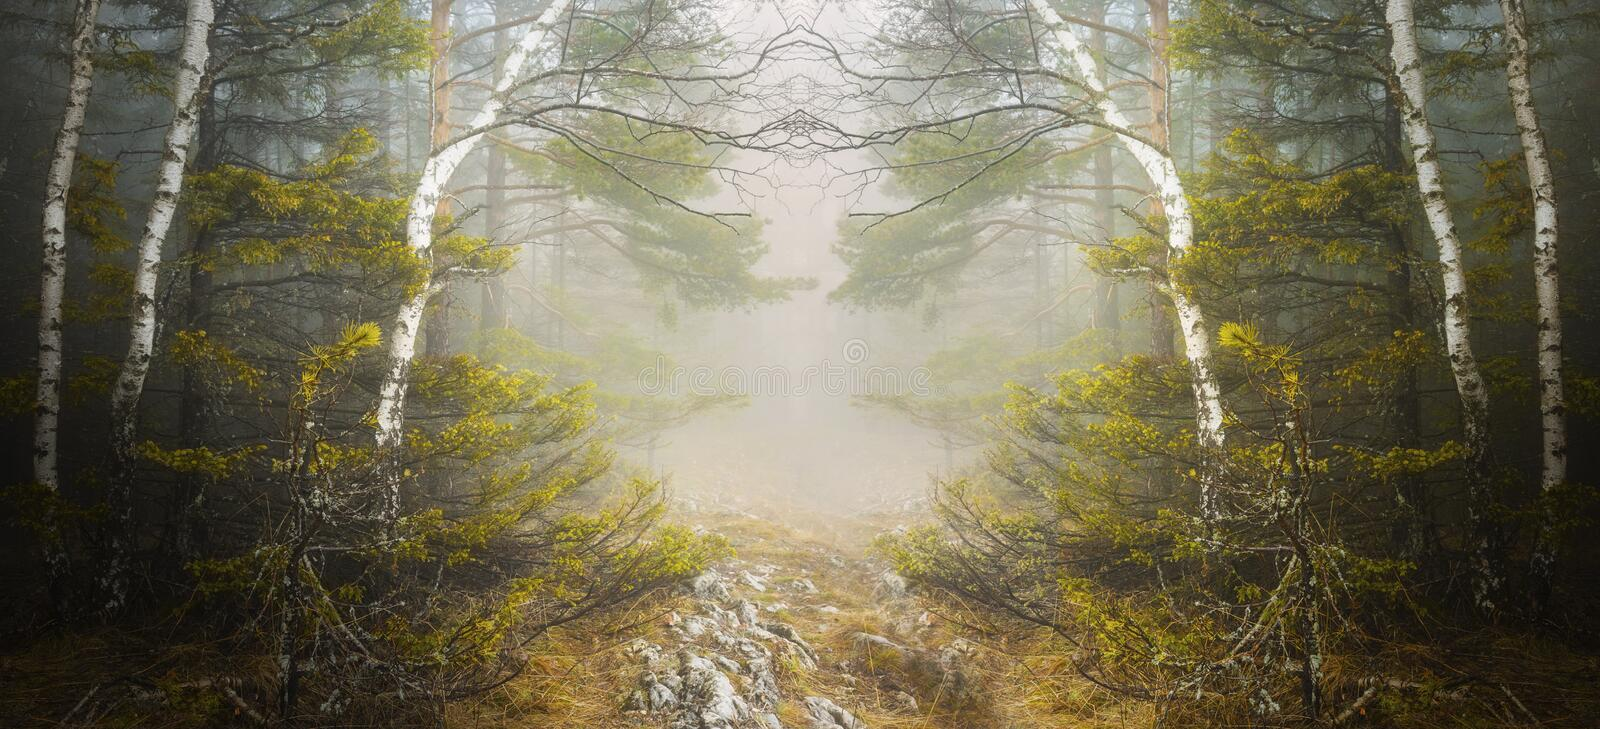 Symmetrical forest and mysterious fog royalty free stock images